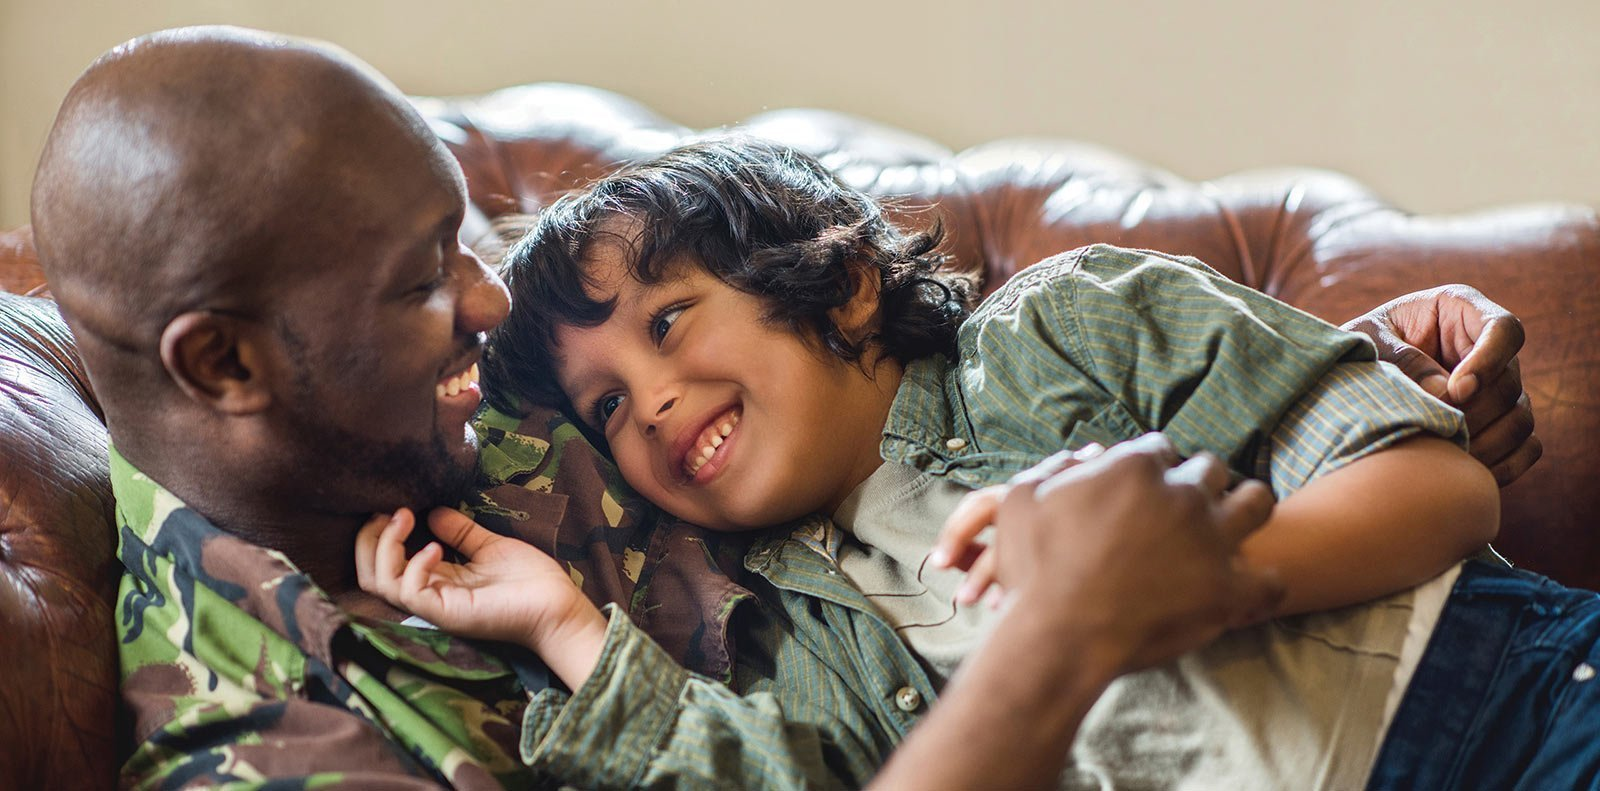 military veteran father & son embrace, smiling on a leather couch